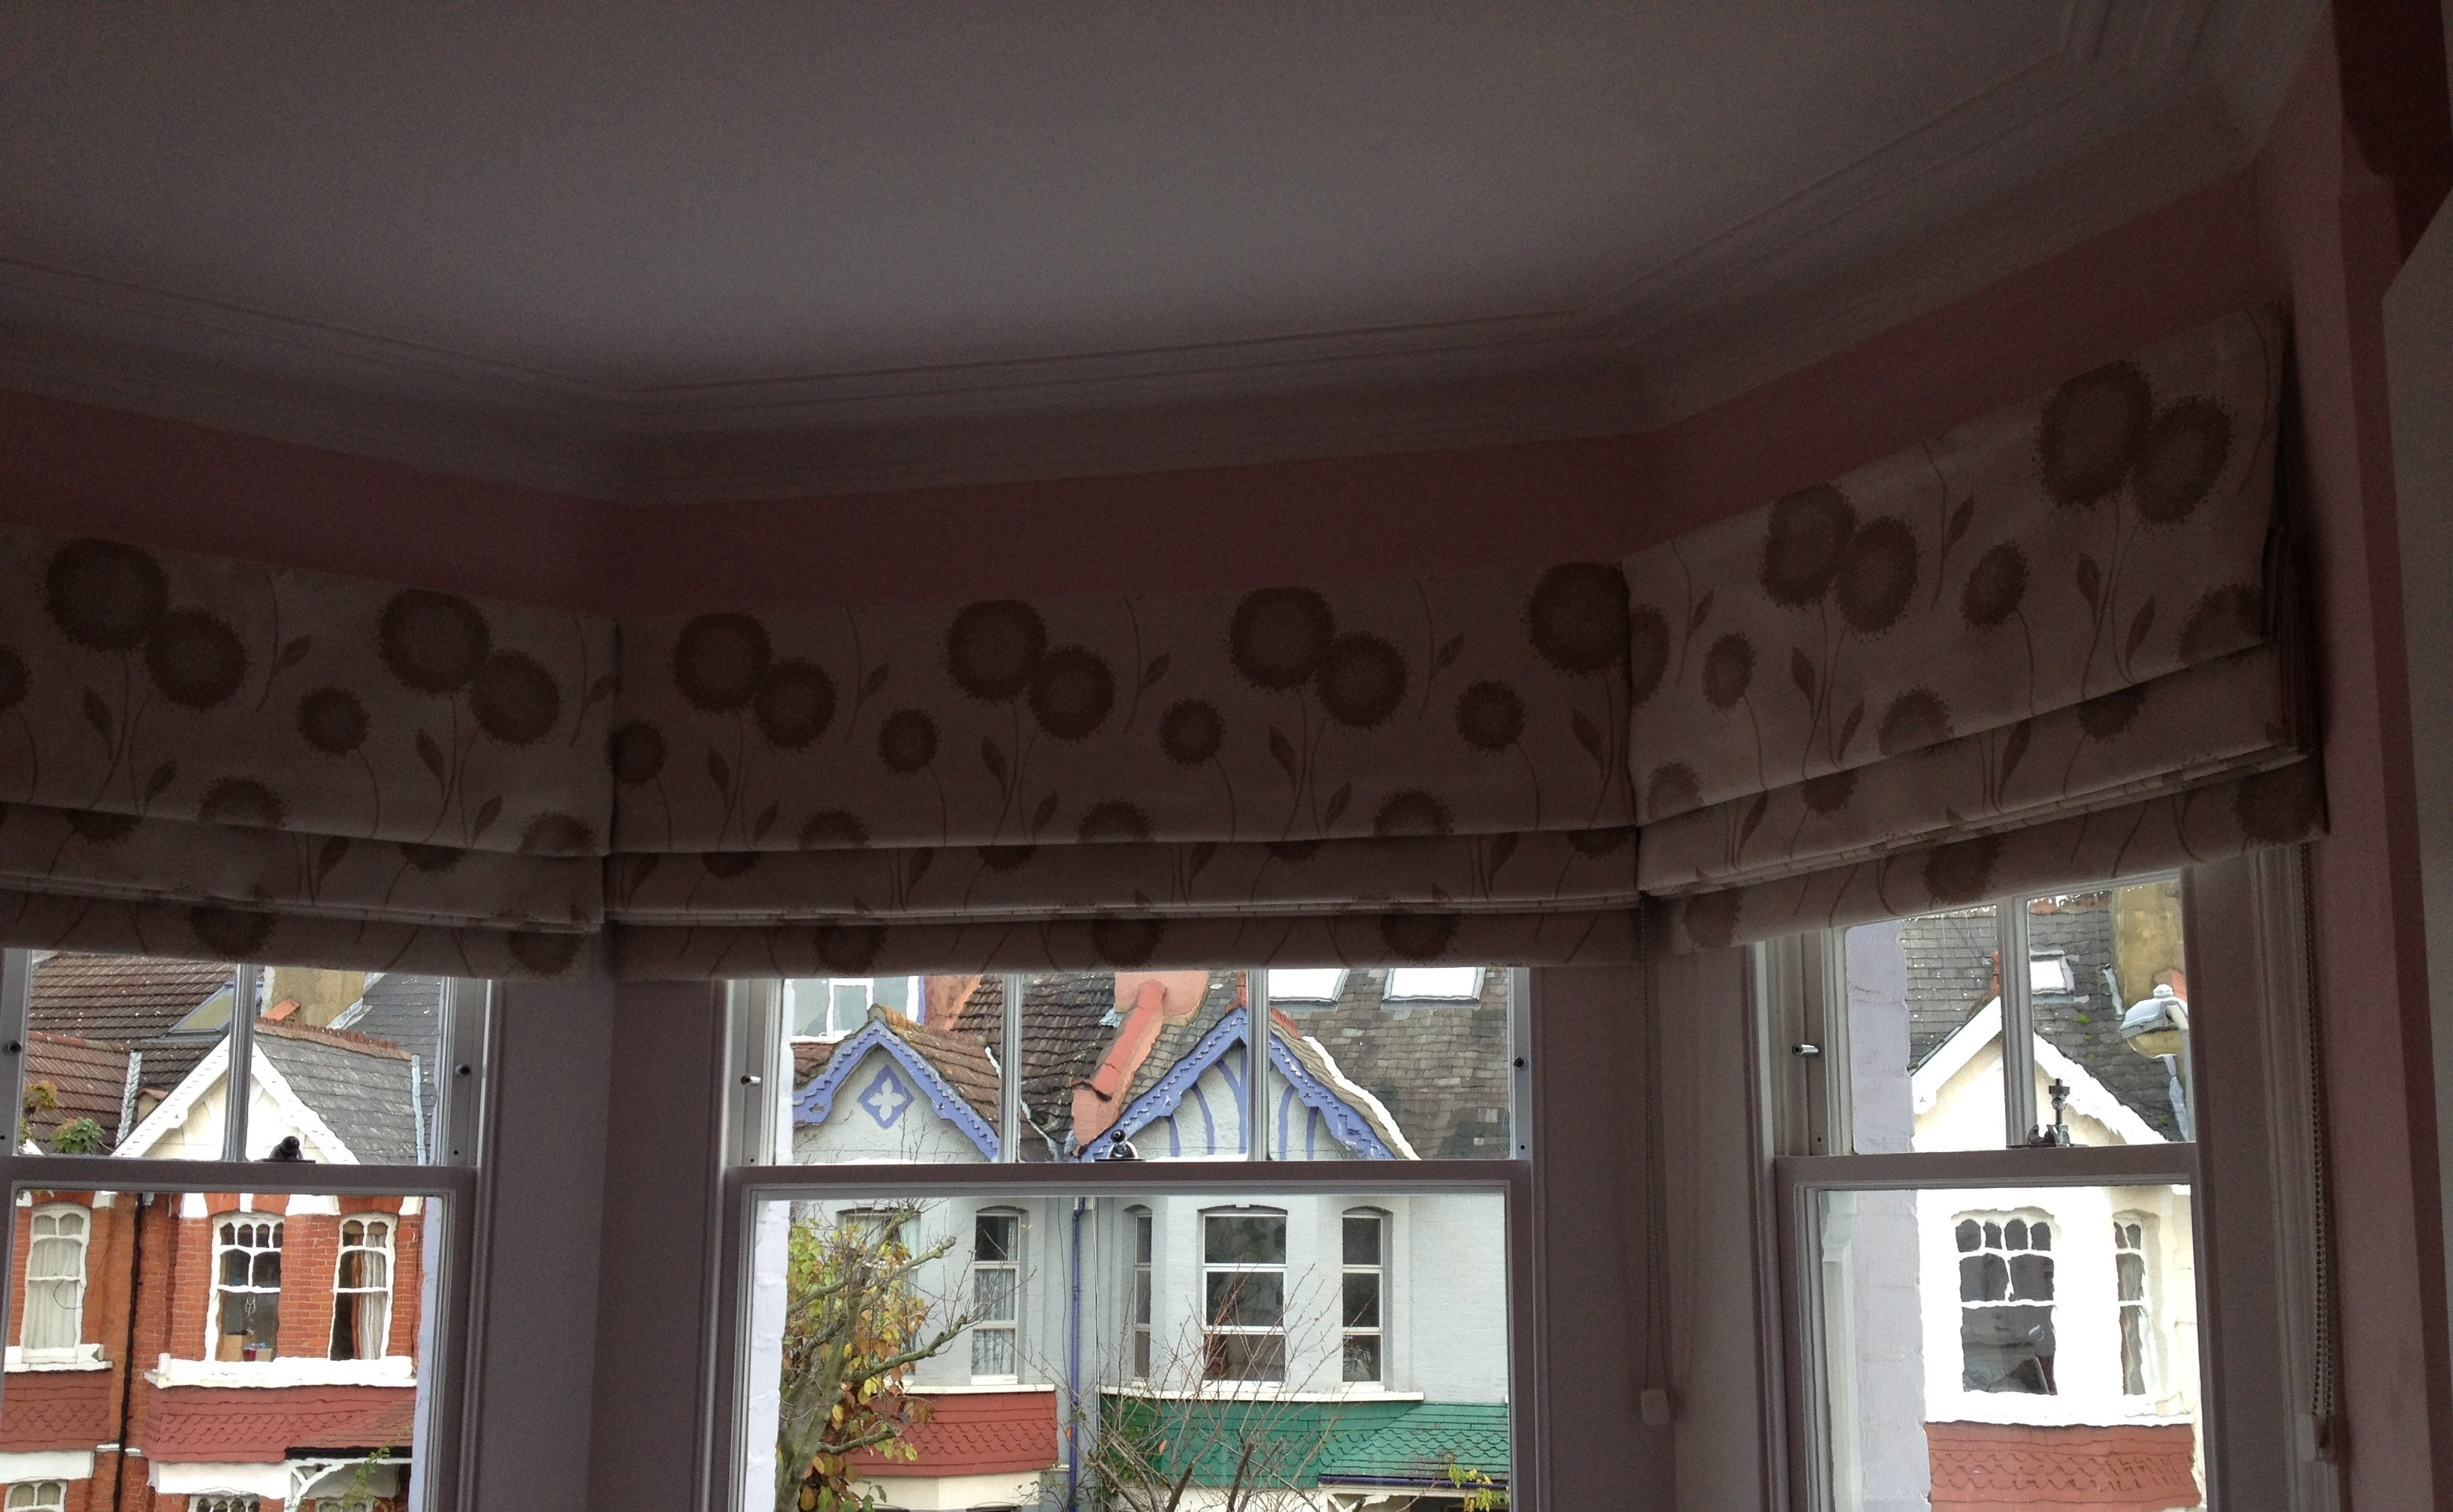 We Offer Roman Blinds At Affordable Prices In South Croydon